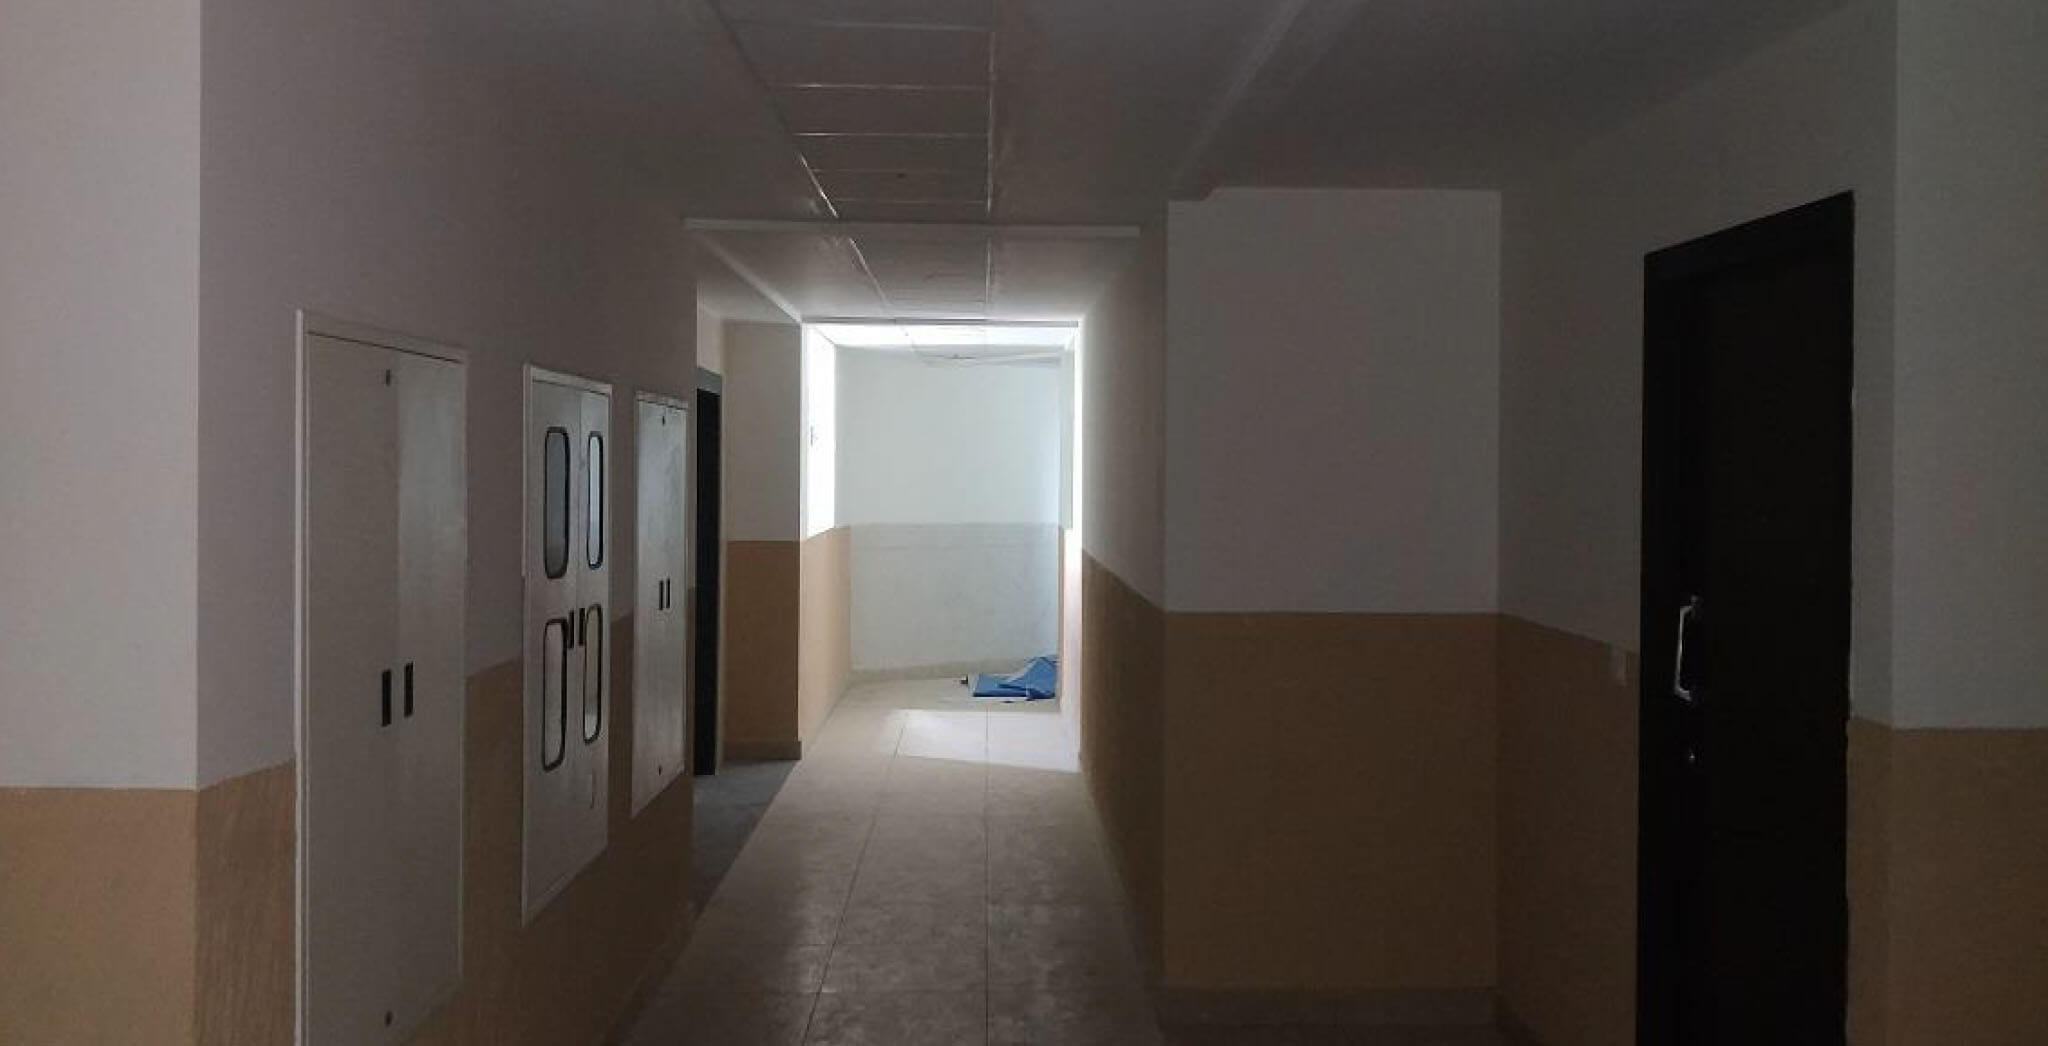 Jun 2018 - Tower G—Corridor works nearing completion